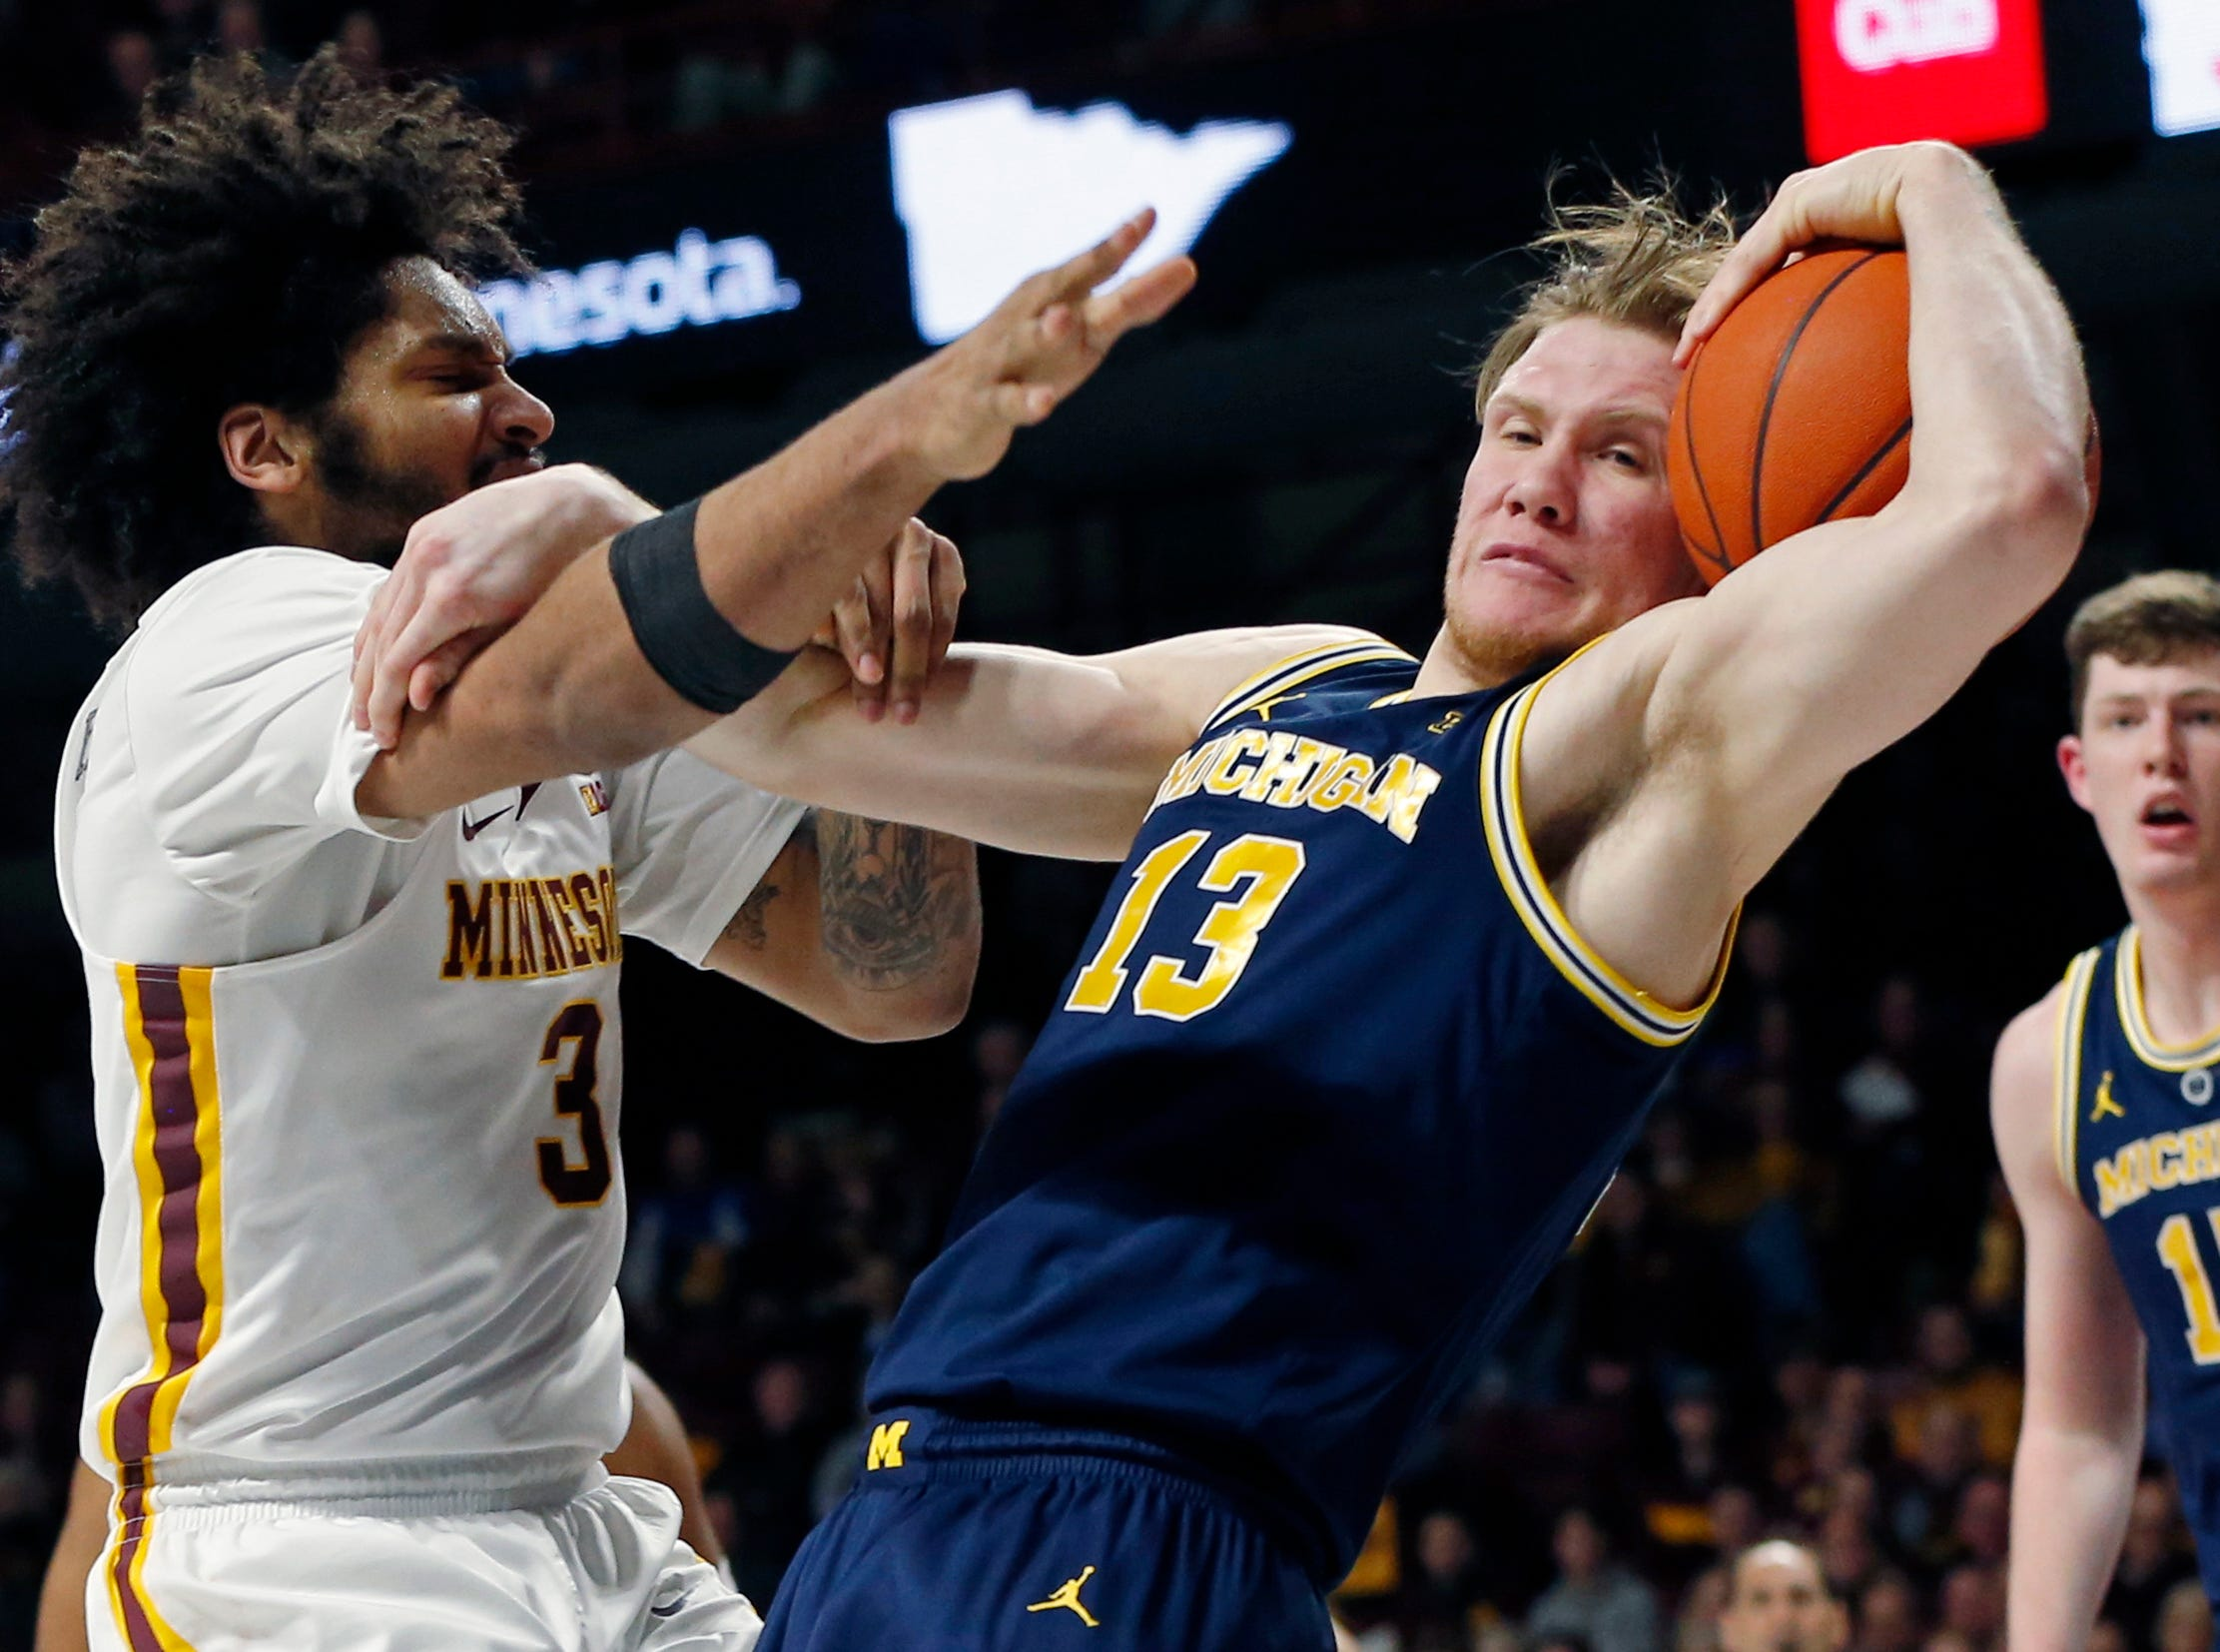 Michigan's Ignas Brazdeikis, front right, tries to keep Minnesota's Jordan Murphy away from the ball in the first half.